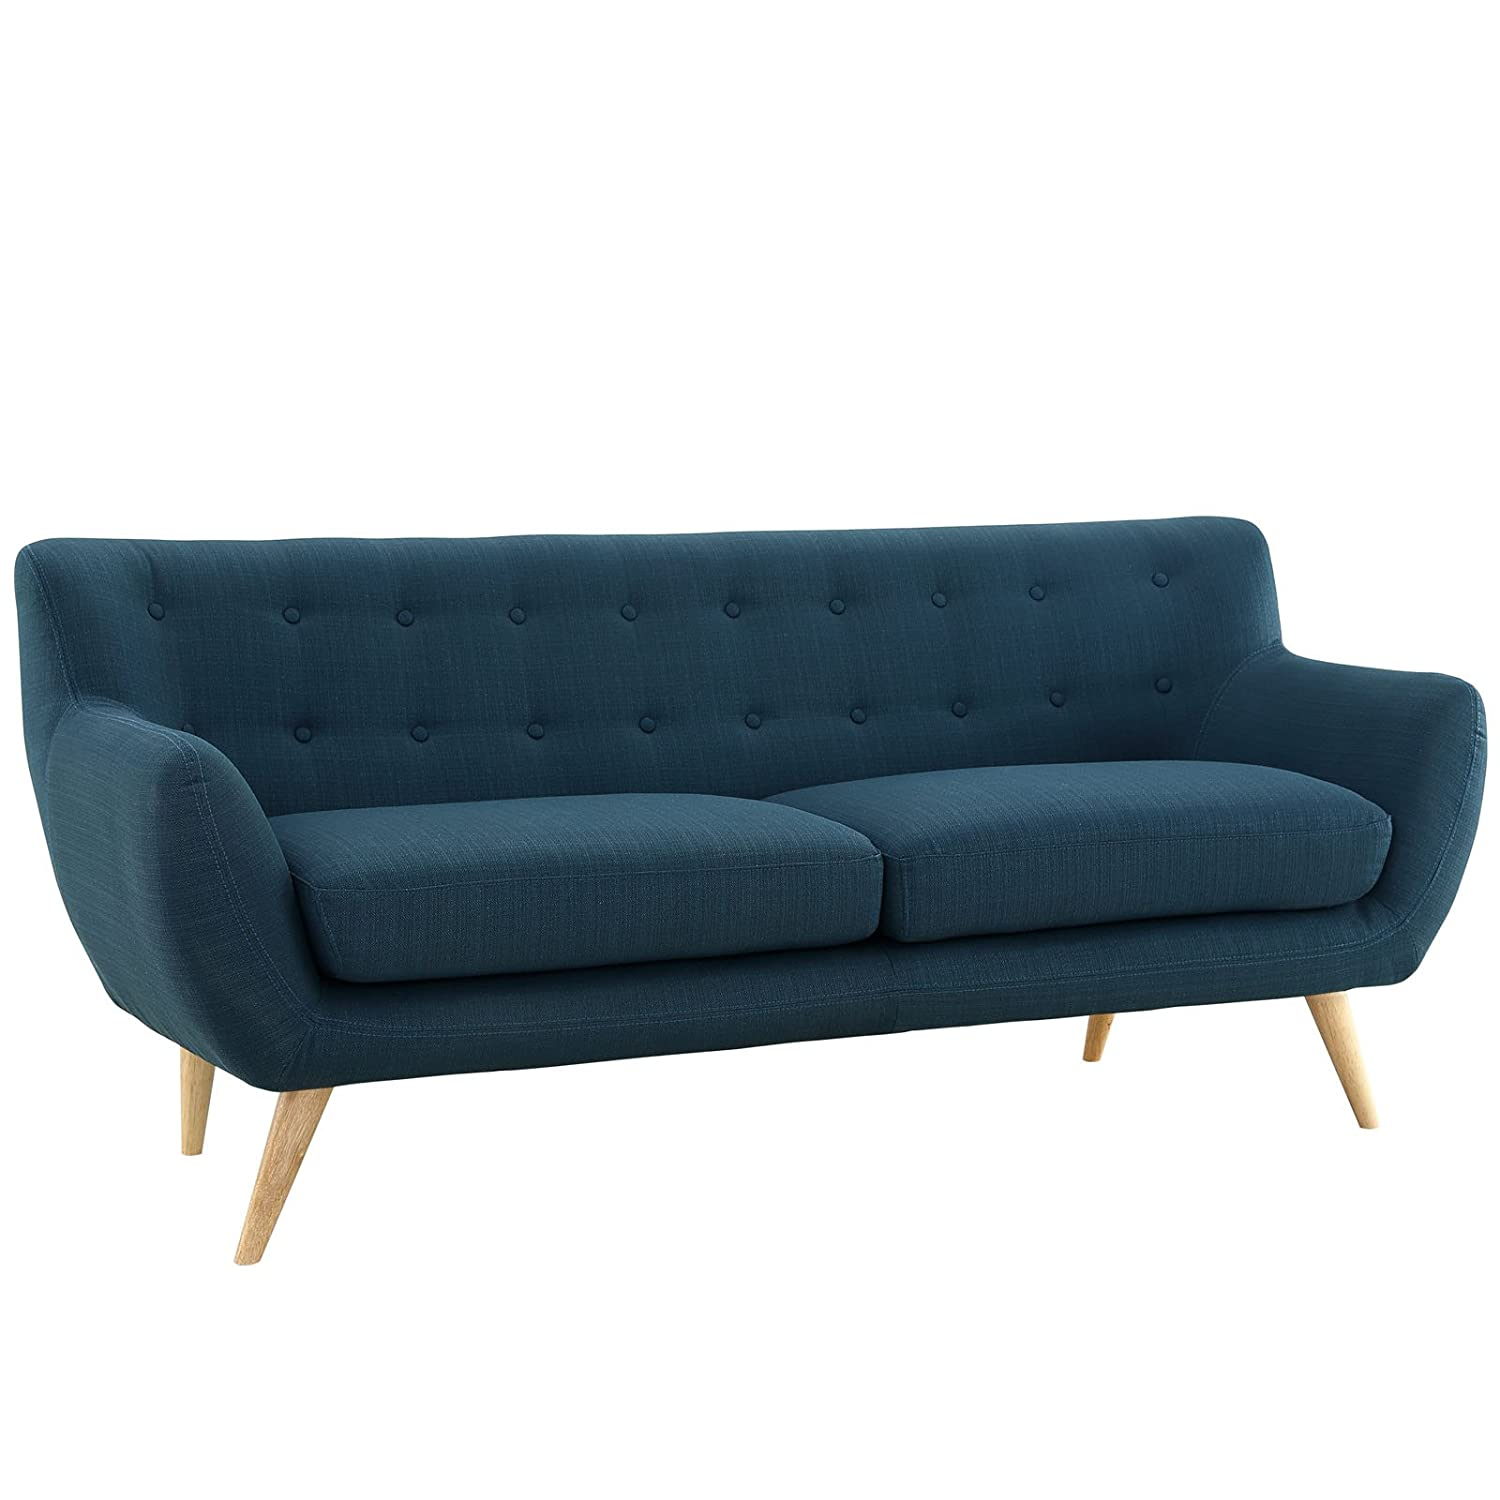 Amazon.com: Modway Remark Mid Century Modern Sofa With Upholstered Fabric  In Azure: Kitchen U0026 Dining